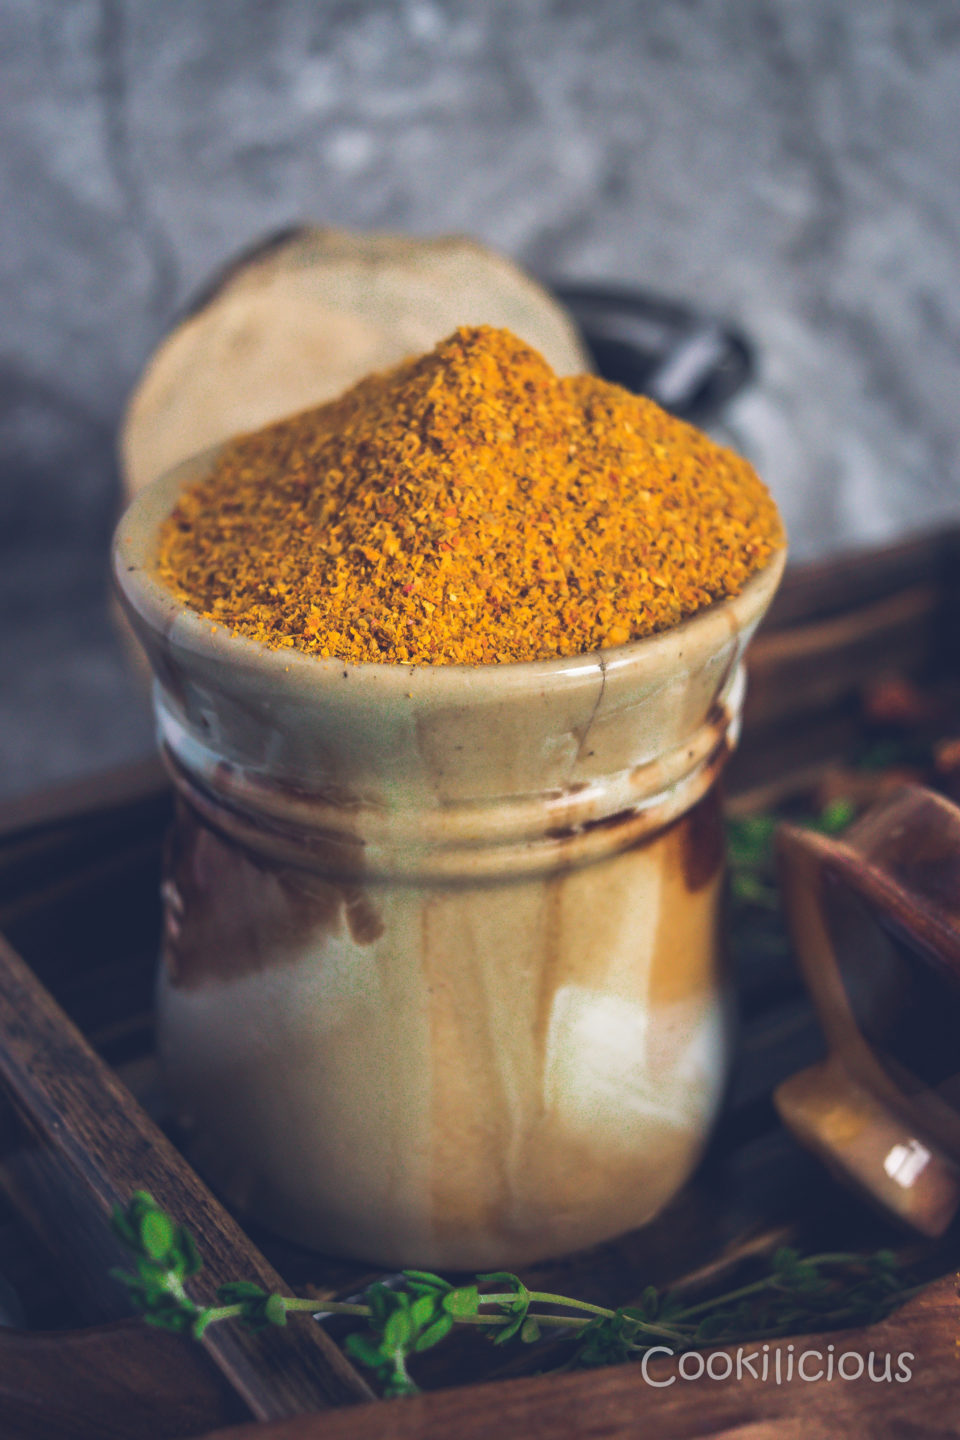 side view of the jar filled with sambhar powder